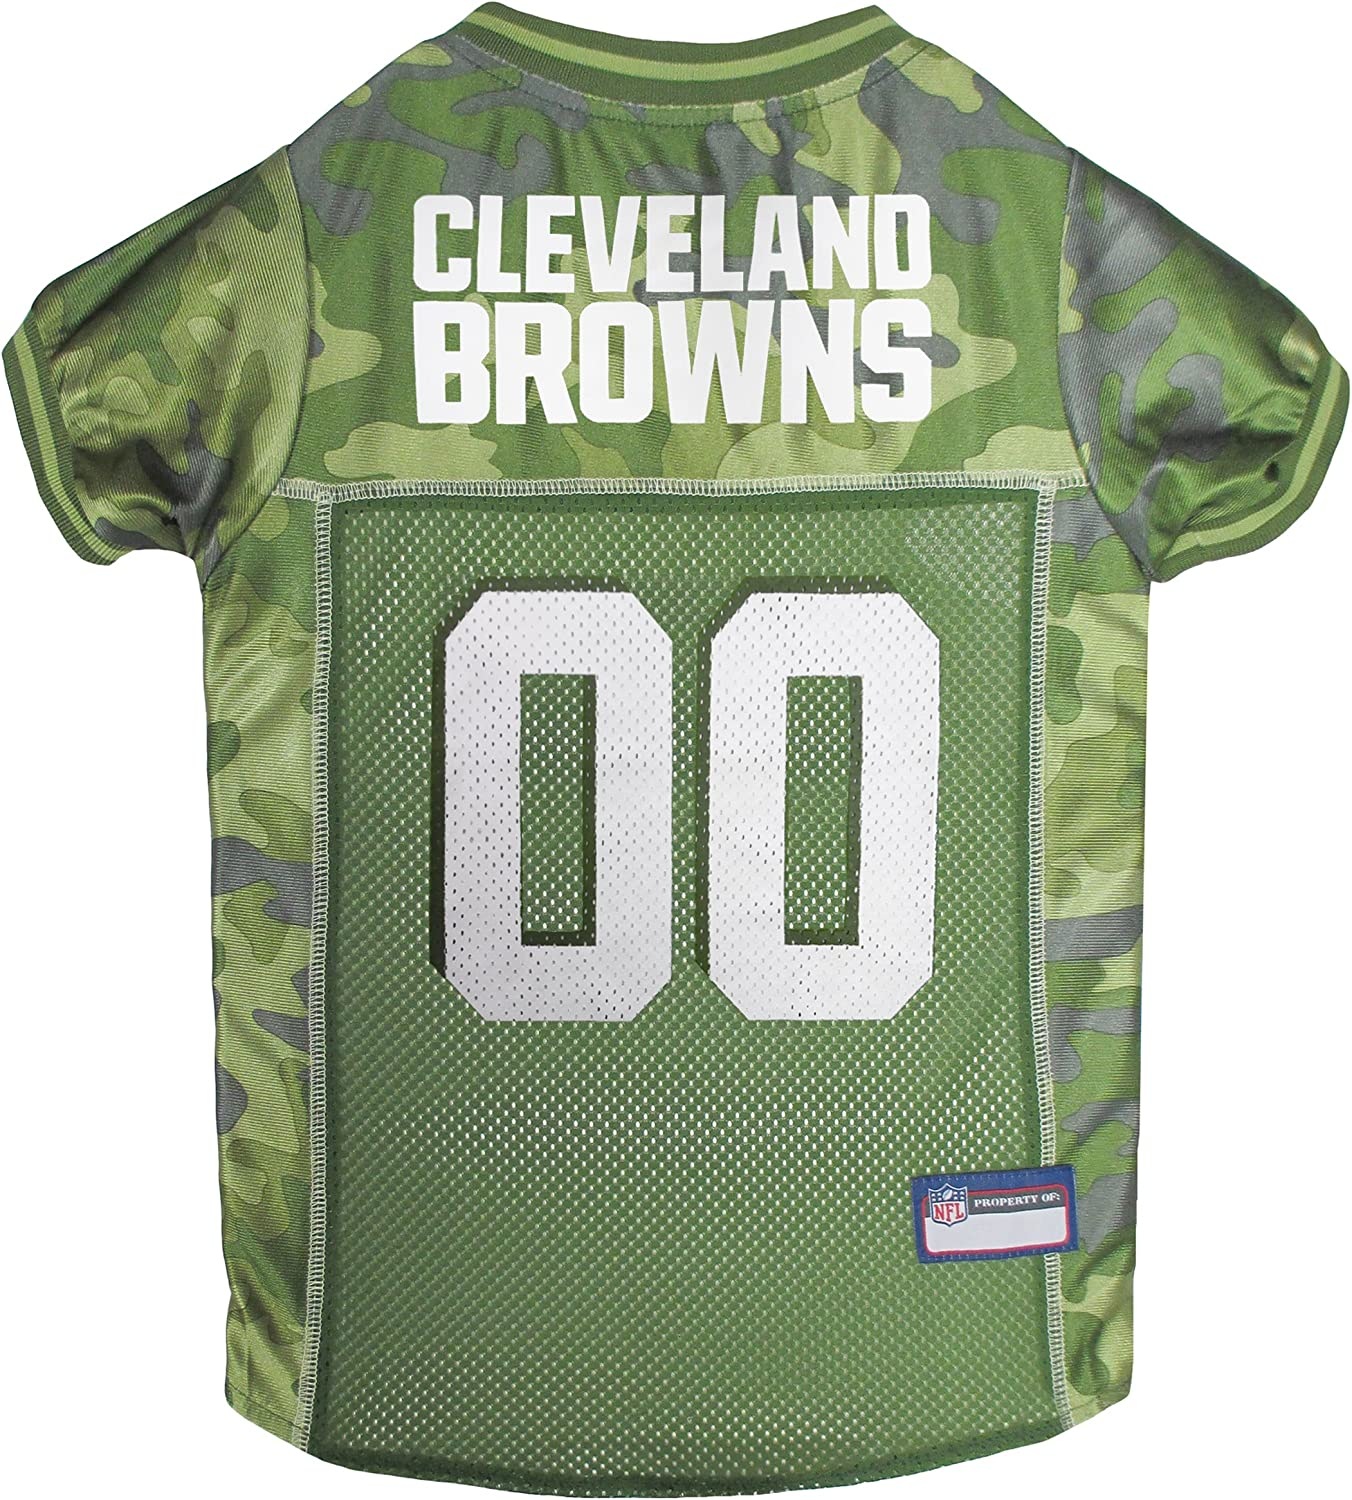 NFL Cleveland Browns Camouflage Dog Jersey, XLarge.  CAMO PET Jersey Available in 5 Sizes & 32 NFL Teams. Hunting Dog Shirt